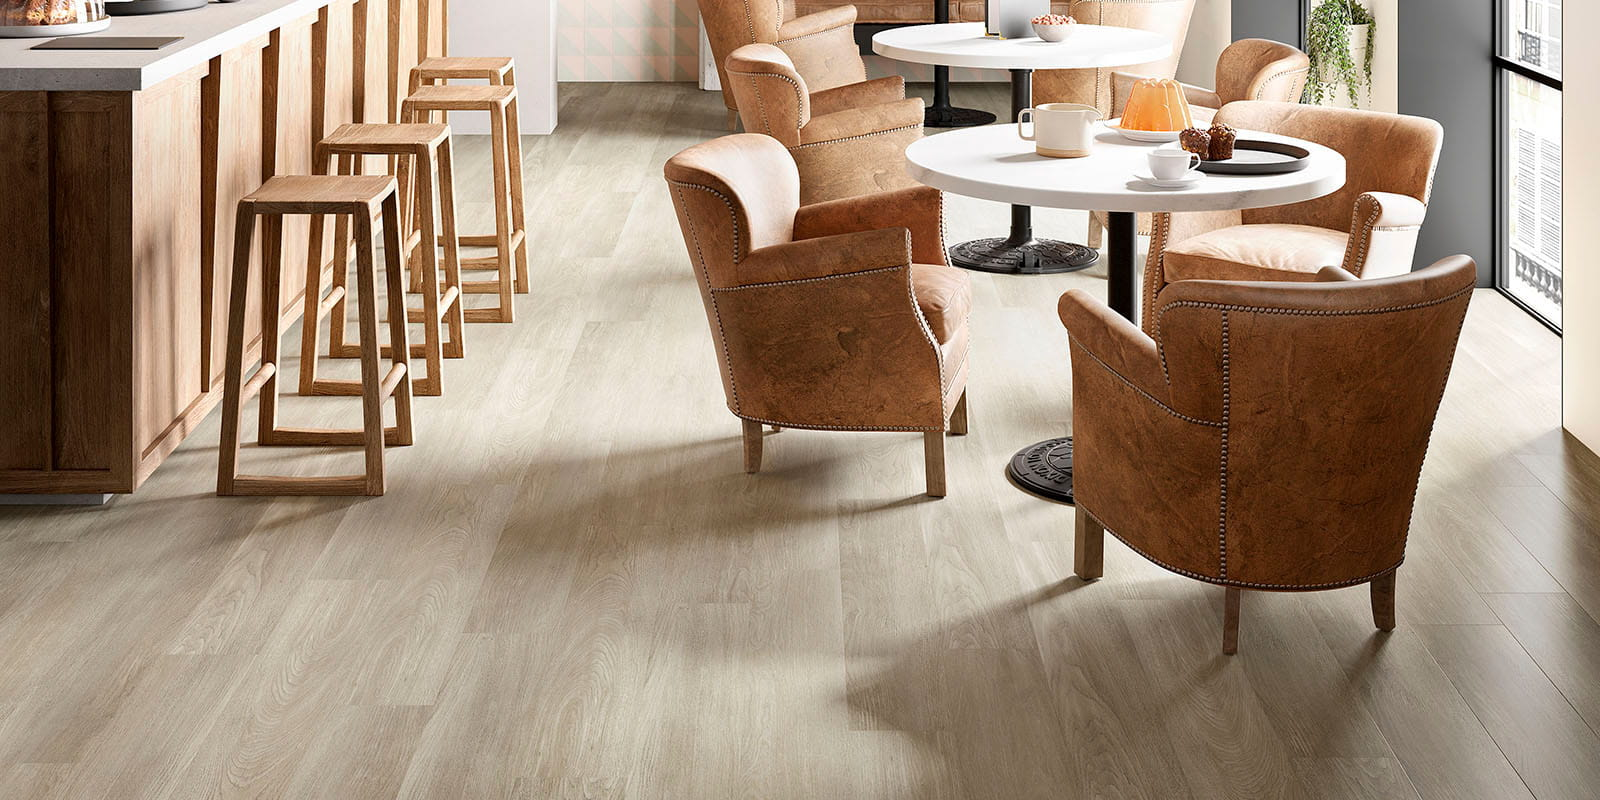 Invictus® Luxury Vinyl Flooring - New England Oak - Dusk - Comm_hospitality